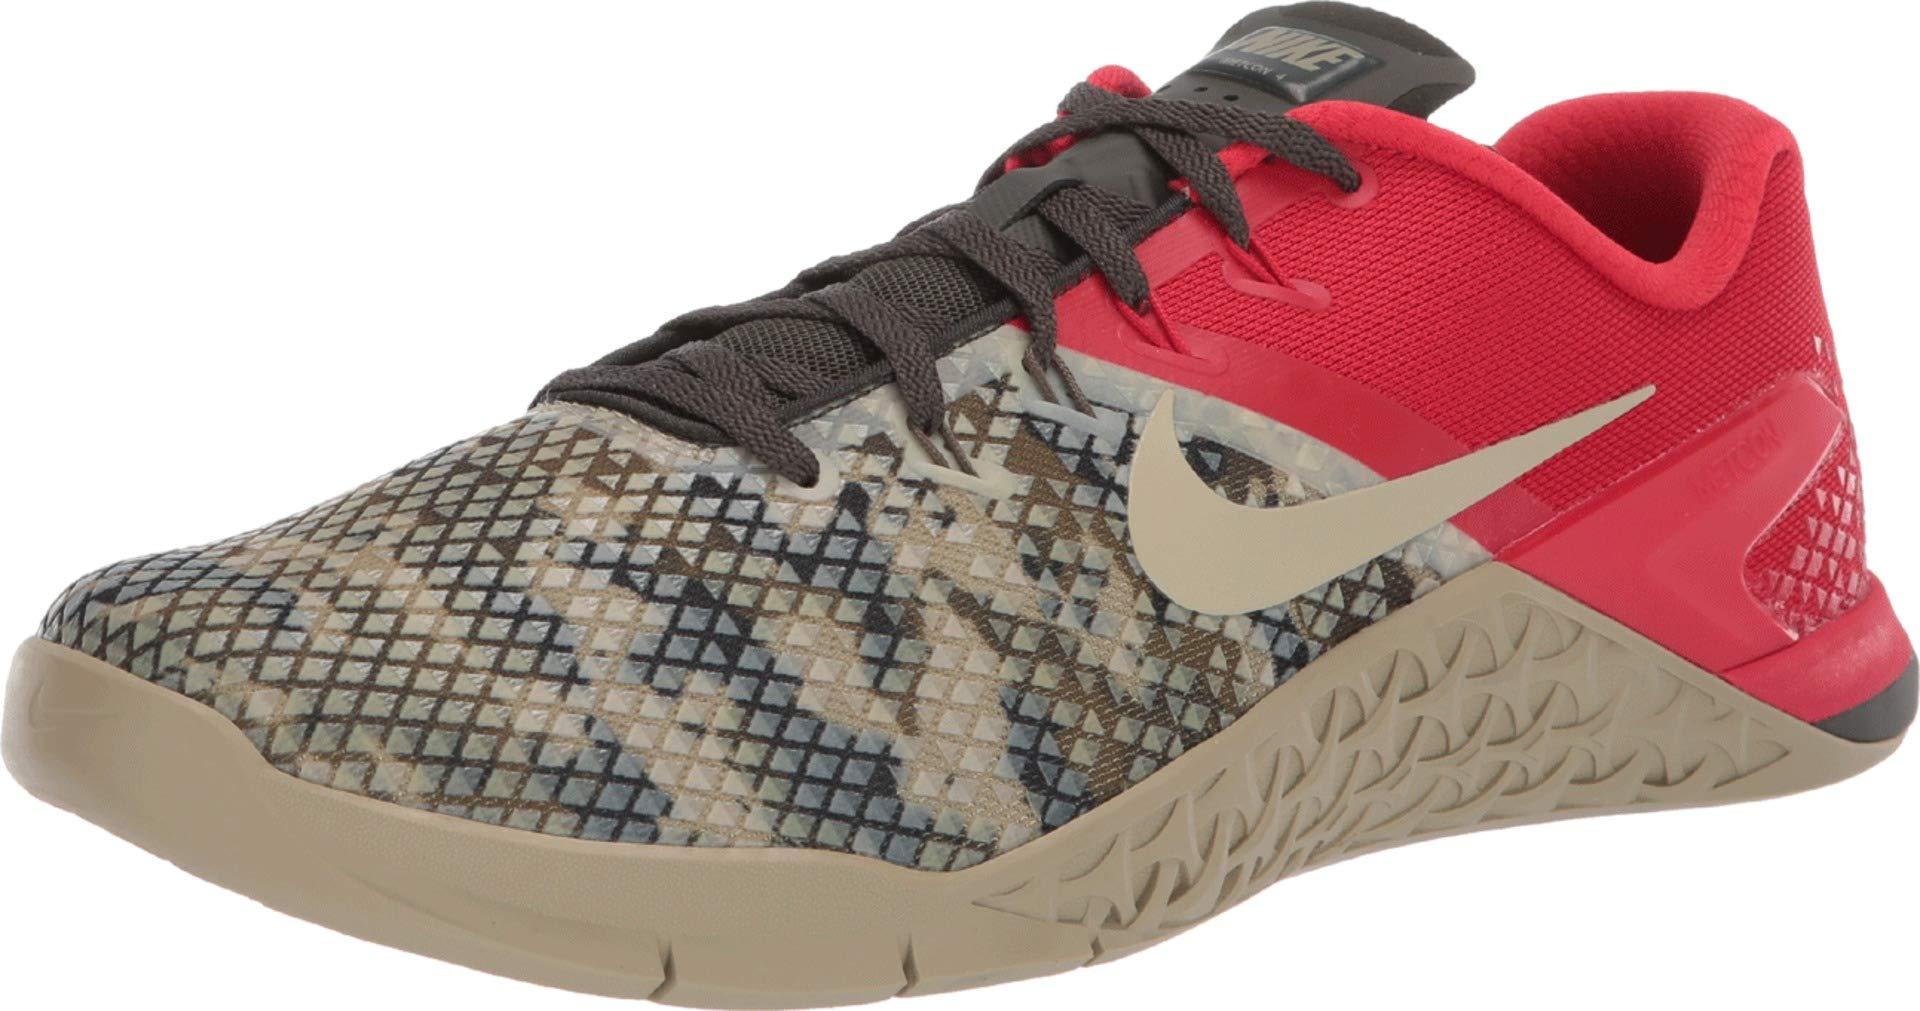 Nike Metcon 4 XD Men's Training Shoe Sequoia/University RED-Olive Canvas 7.5